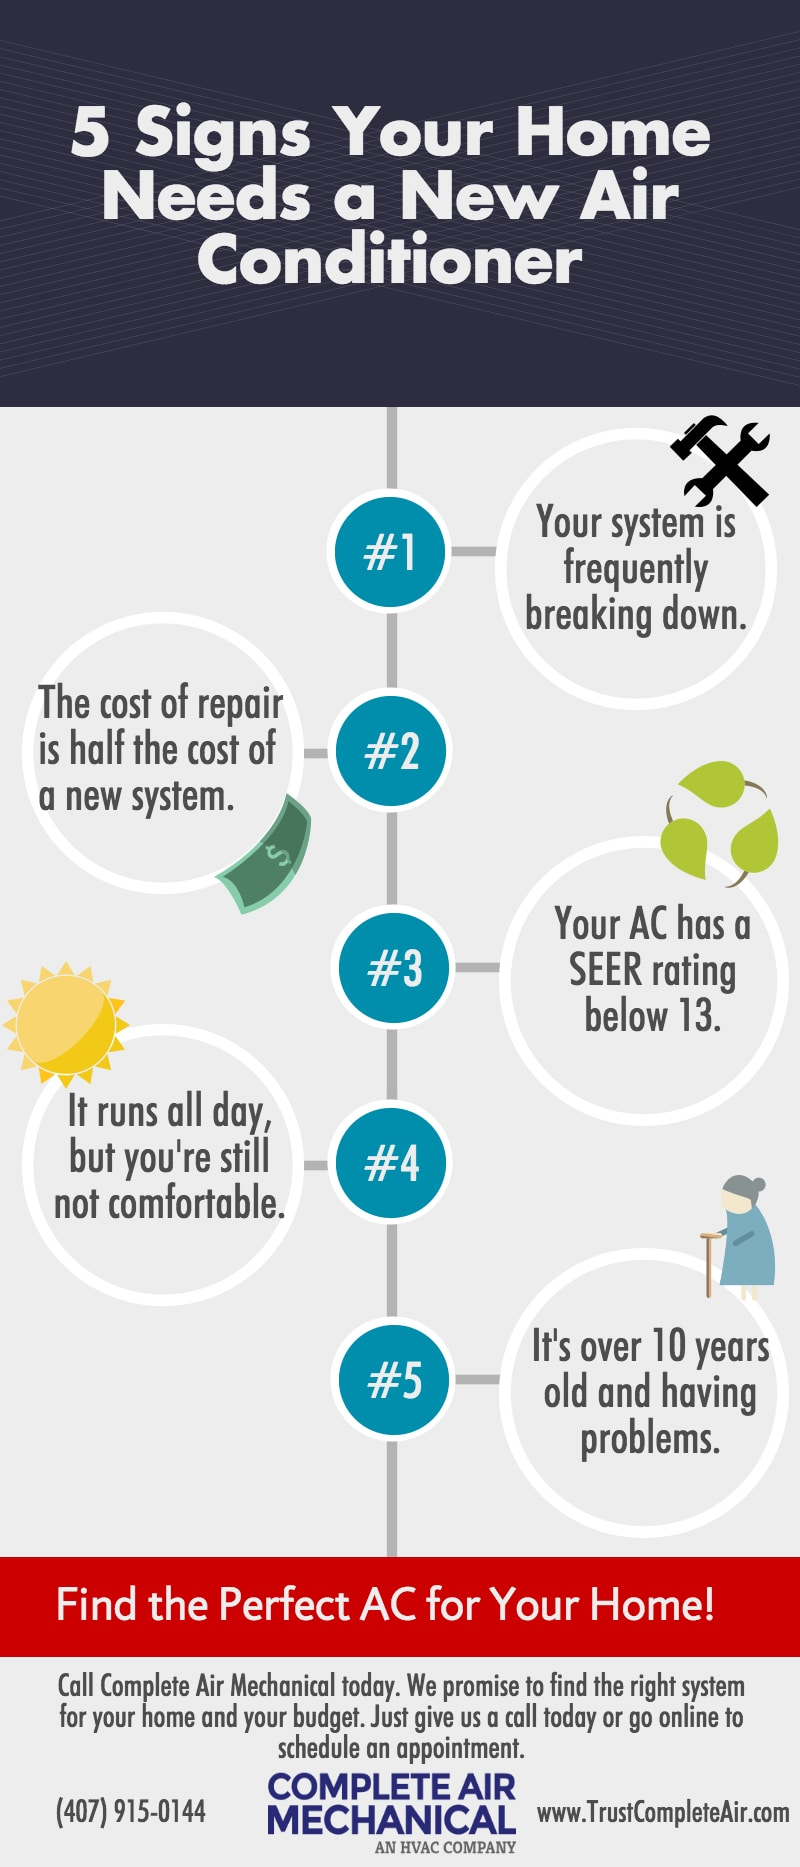 5 Signs Your Home Needs a New Air Conditioner